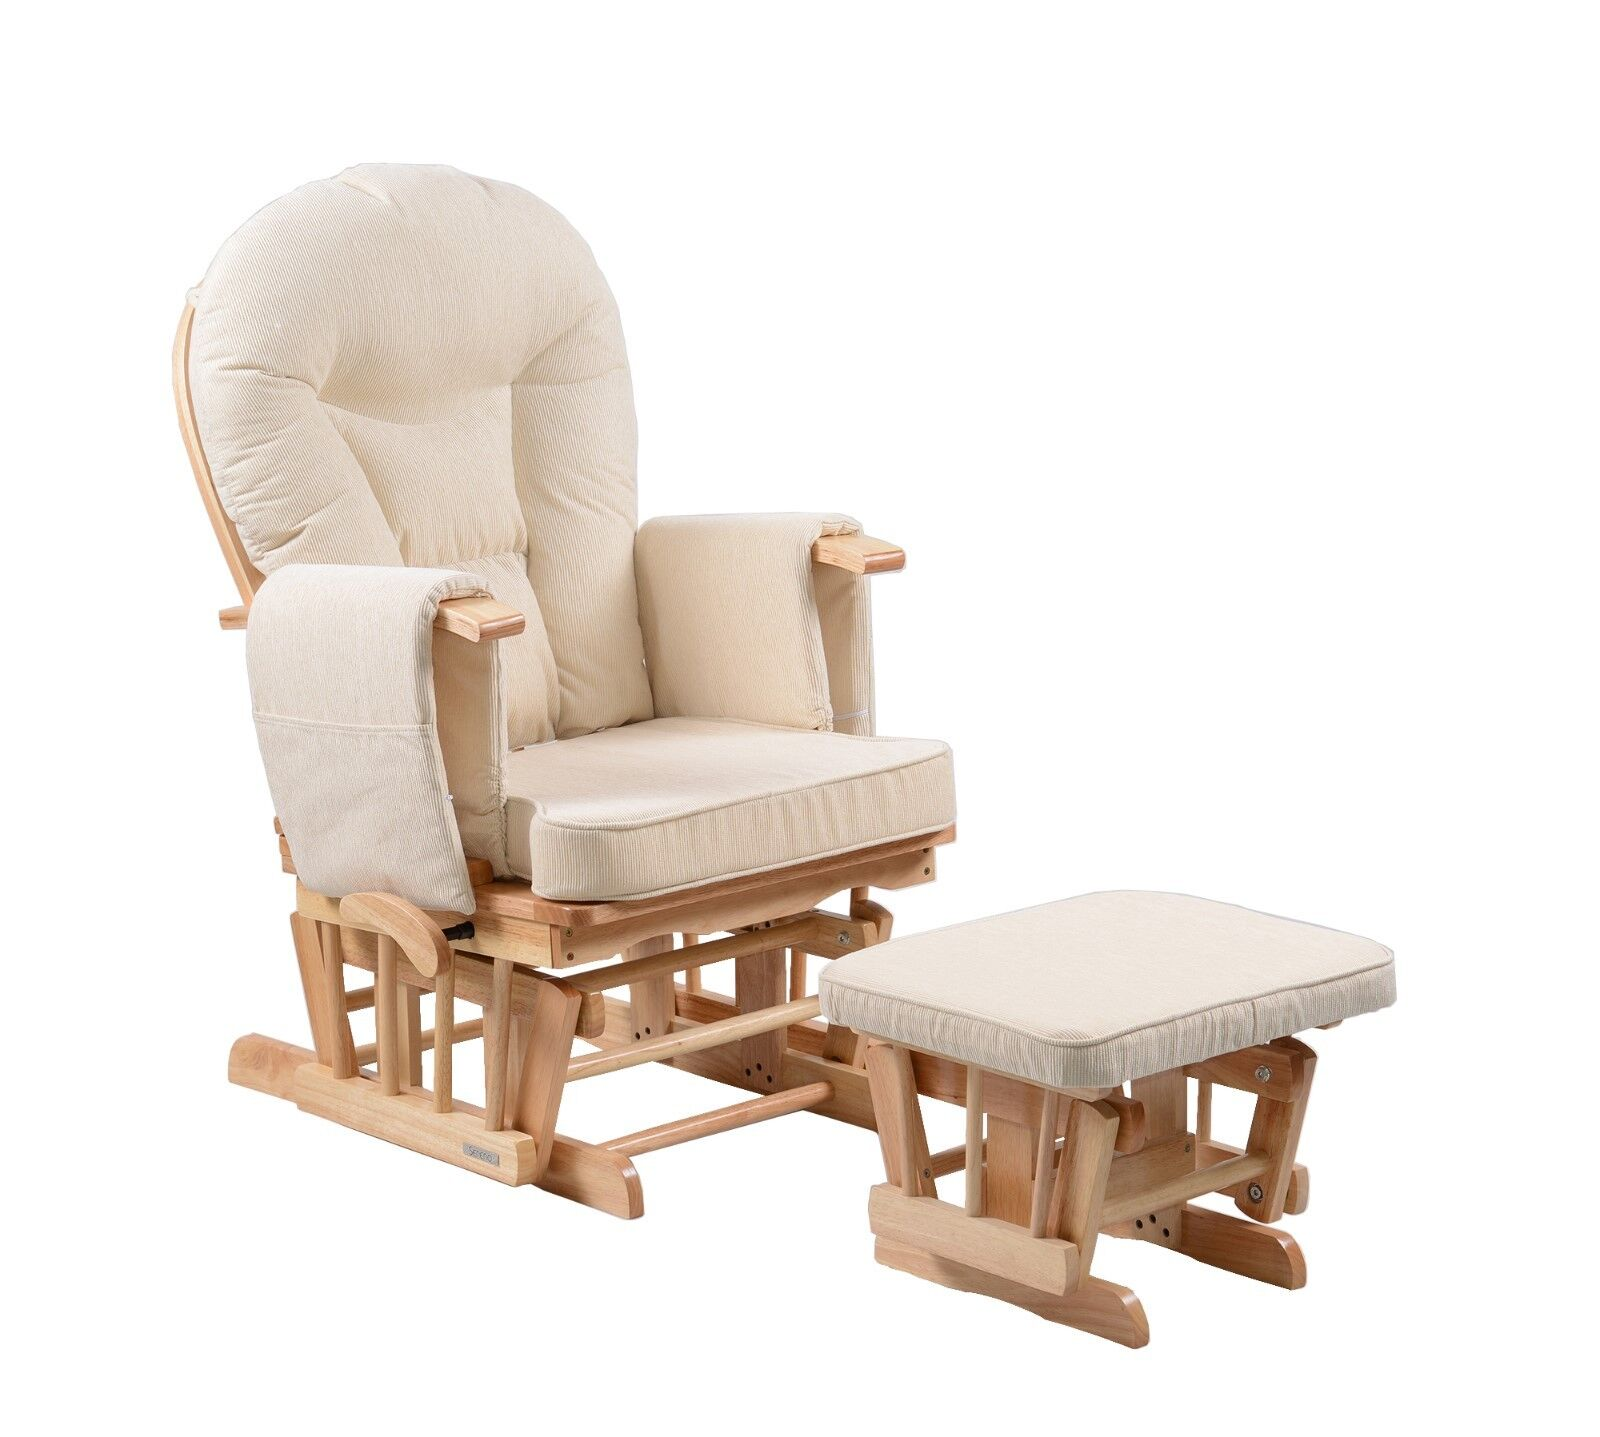 Chairs for Mum Nursery Decoration & Furniture Baby